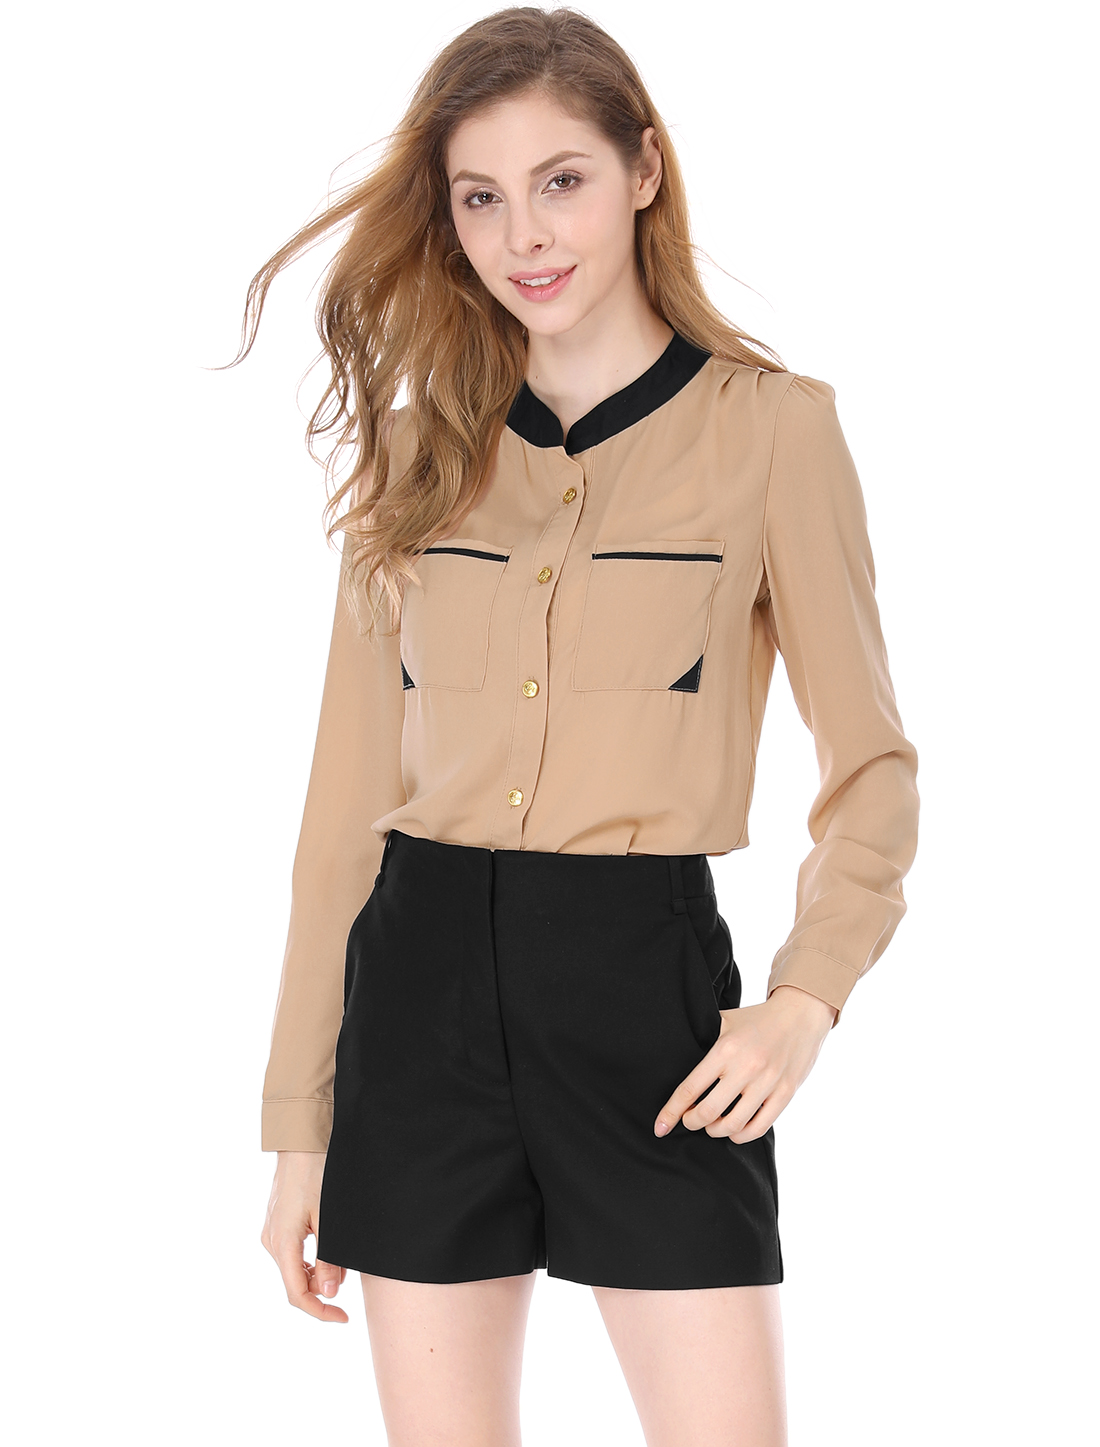 Women See Through Two Bust Patch Pockets Chiffon Shirt Beige L